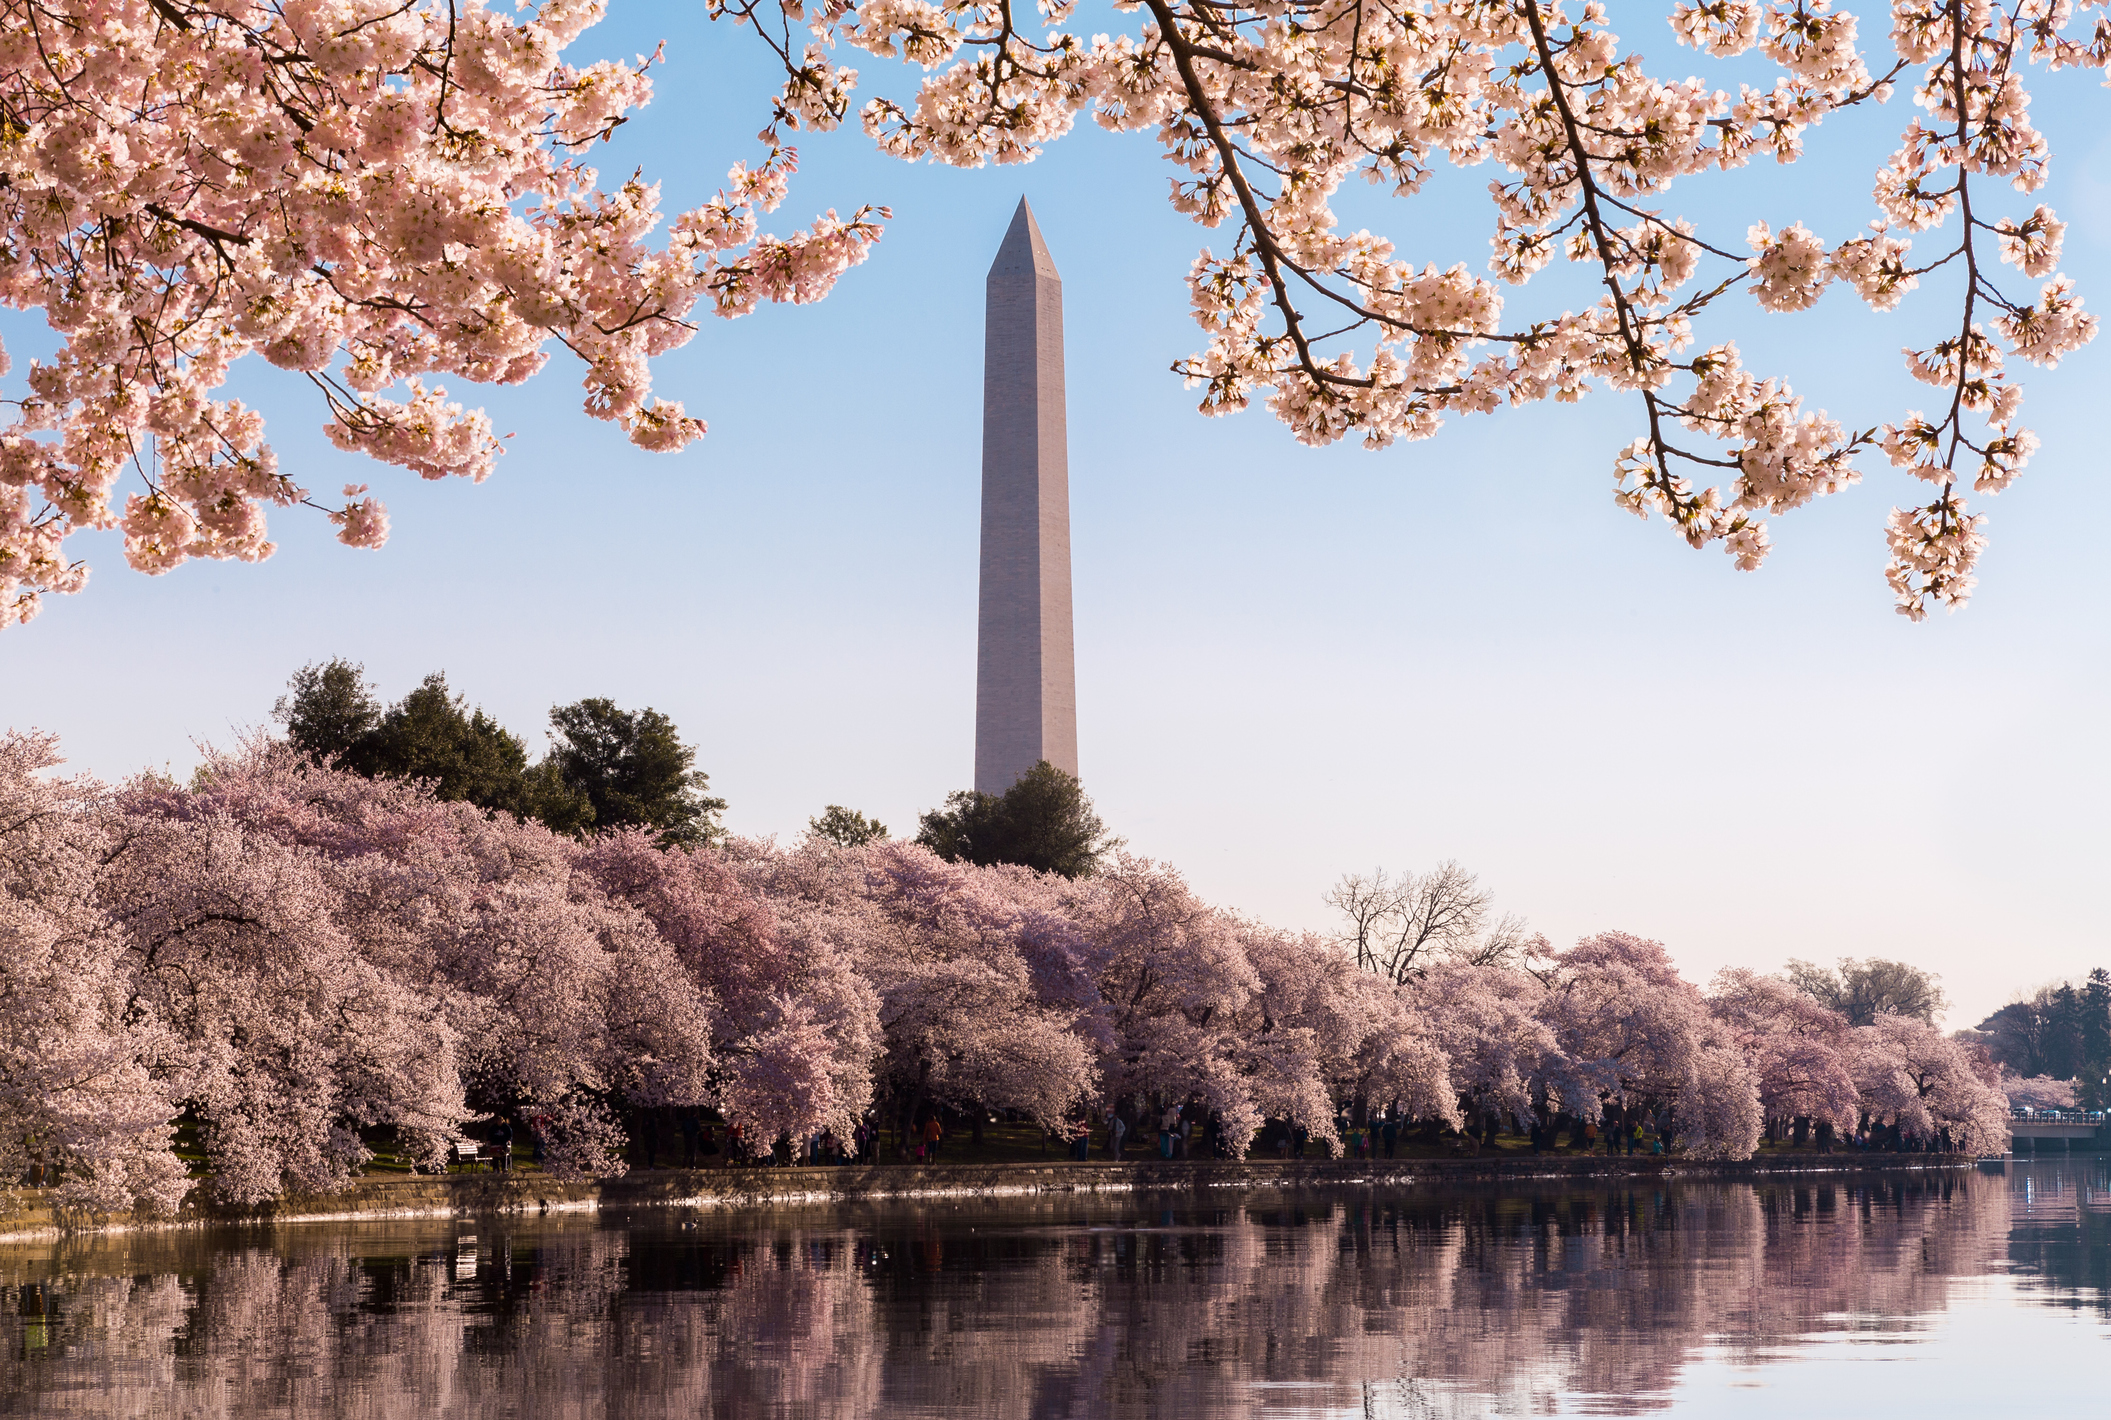 Key Events National Cherry Blossom Festival 2017 Wtop,Perennials Plant With Purple Flowers And Green Leaves